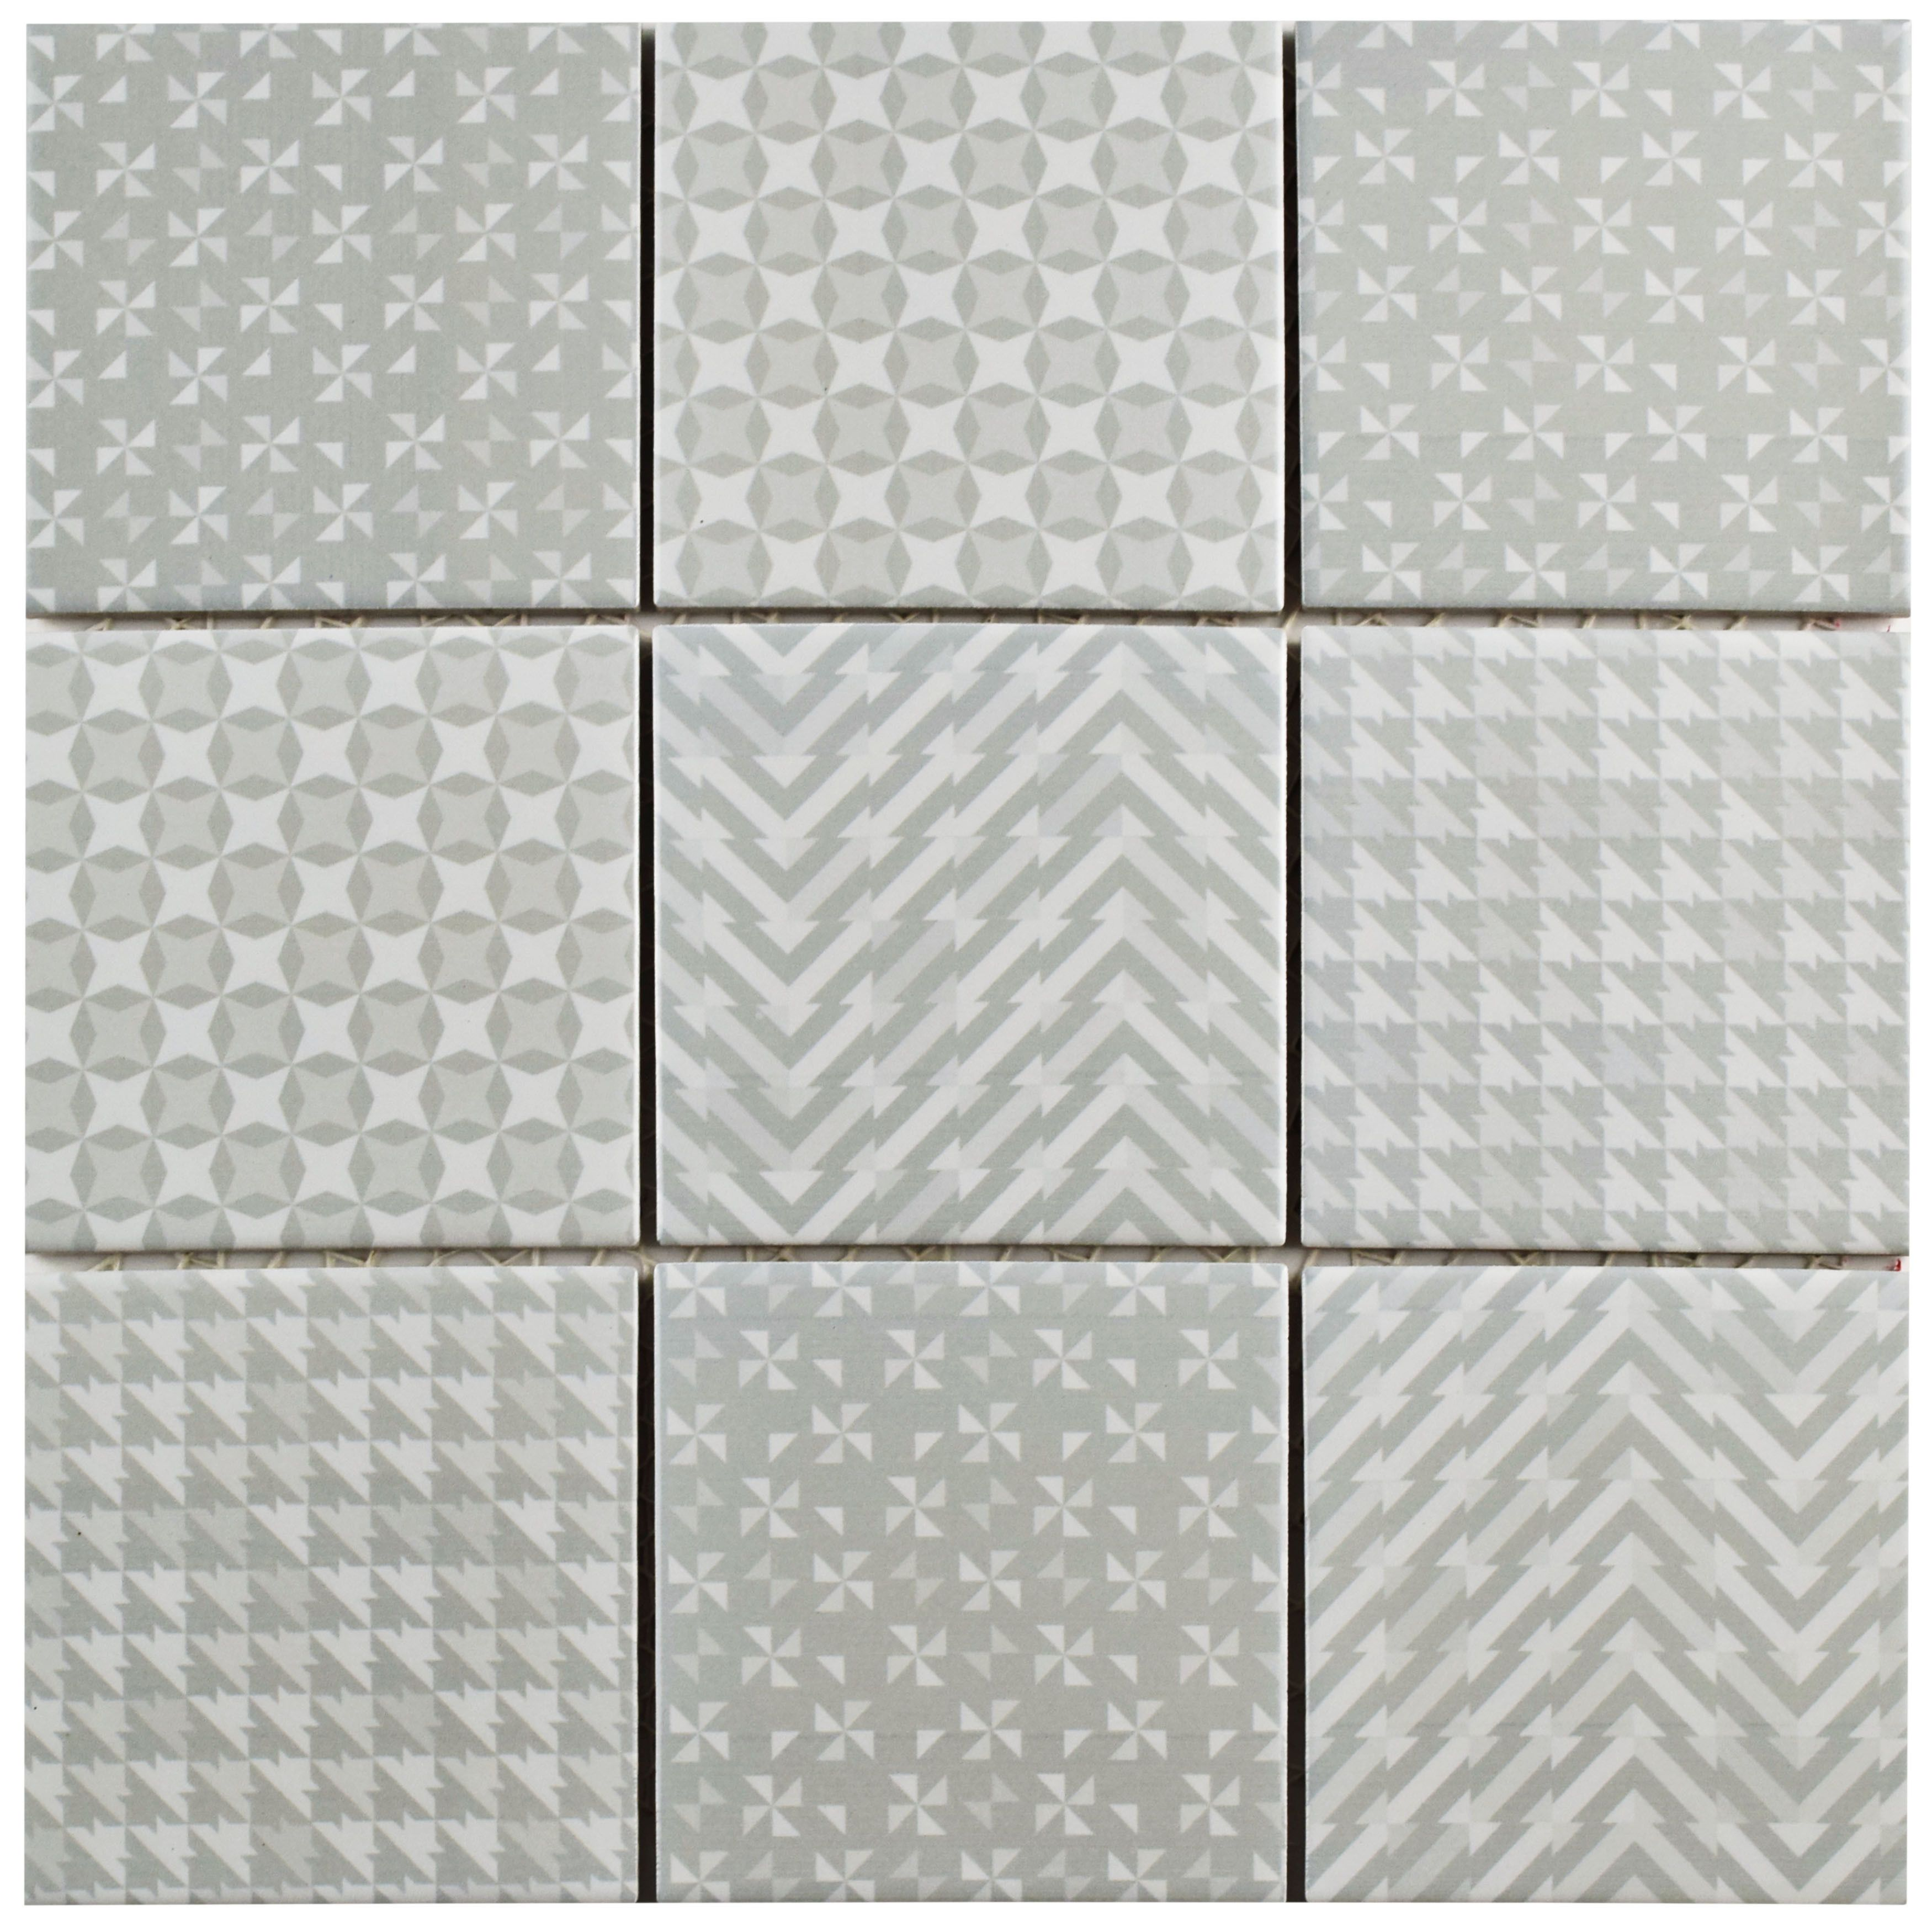 SomerTile 11 625x11 625 inch Geoshine Grey Porcelain Mosaic Floor and Wall  Tile  Case of 5  by SomertileSomerTile 11 625x11 625 inch Geoshine Grey Porcelain Mosaic Floor  . Porcelain Floor Tiles For Outdoor Use. Home Design Ideas